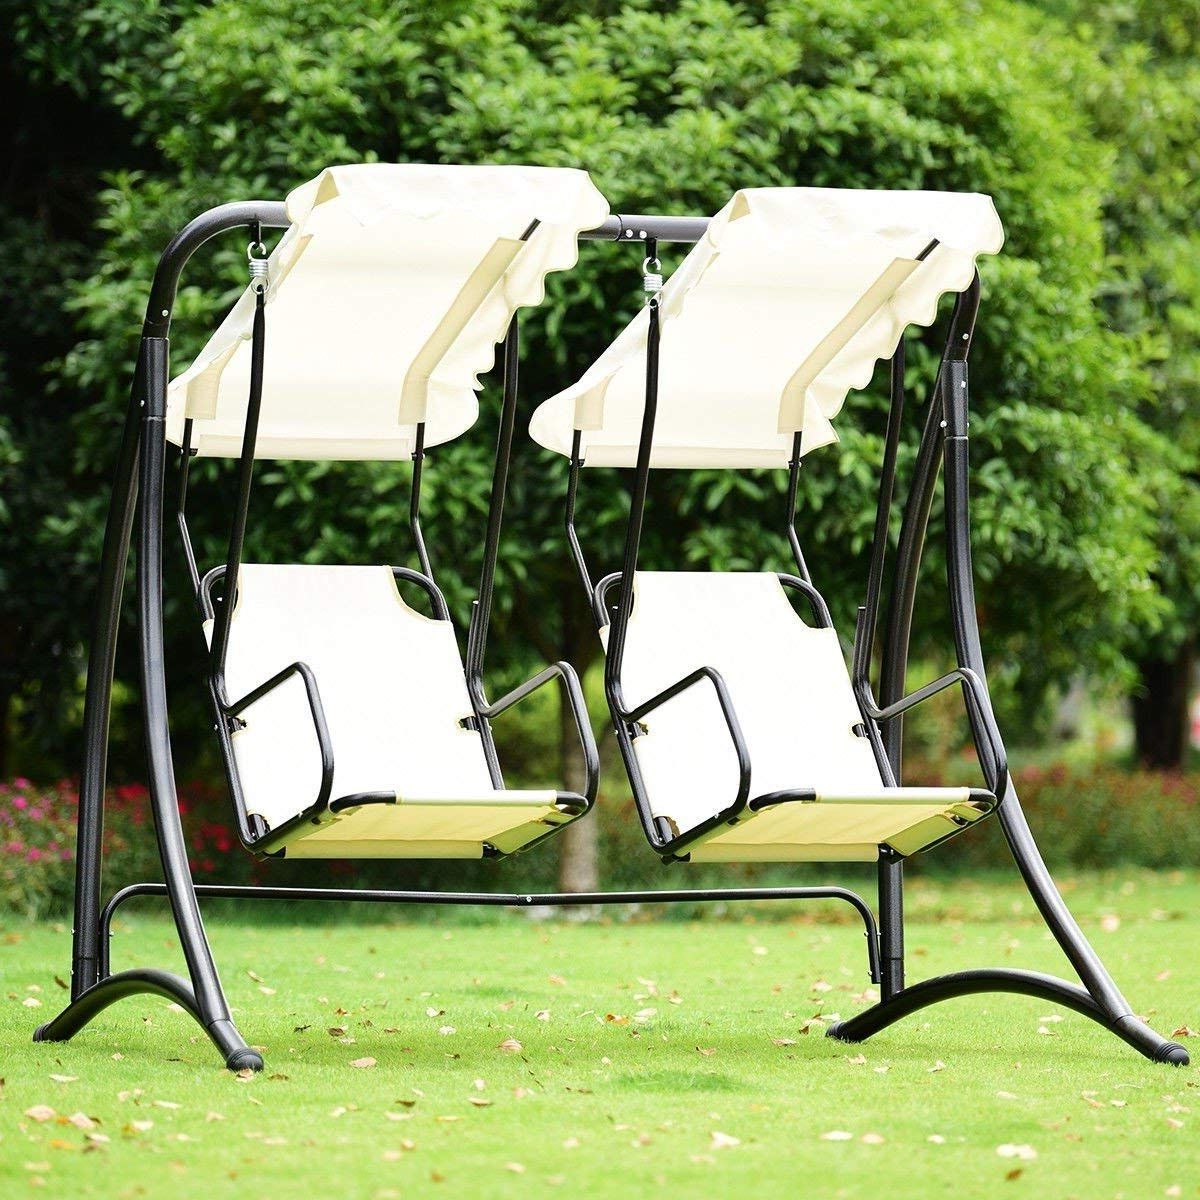 2 Person Adjustable Tilt Canopy Patio Loveseat Porch Swings Regarding Well Known Cheap Canopy For Porch Swing, Find Canopy For Porch Swing (View 20 of 30)